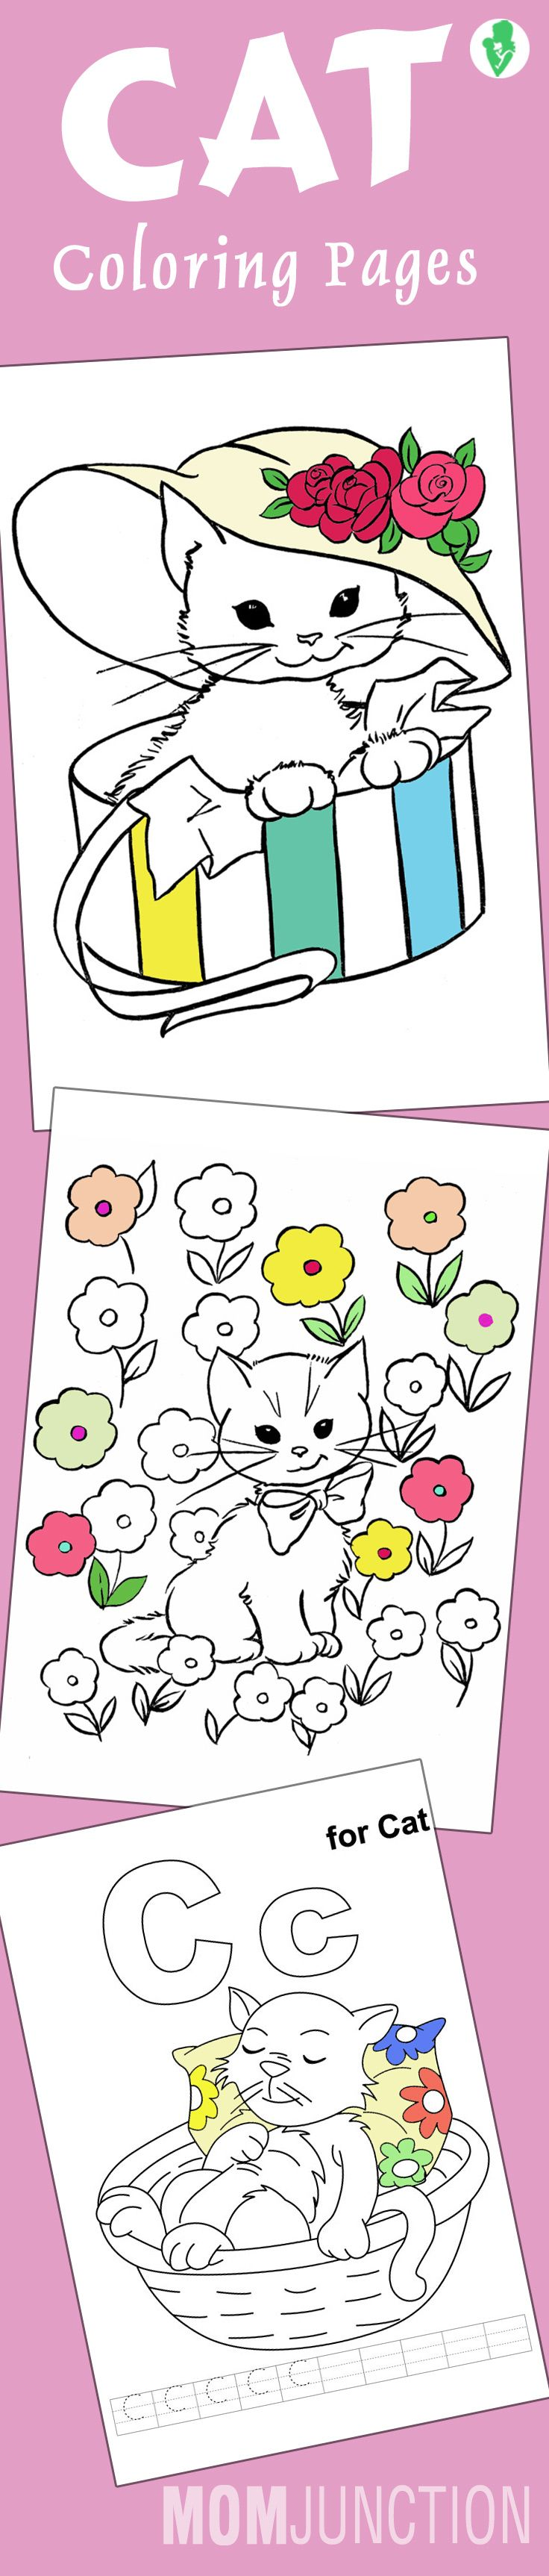 Disney xd free coloring pages